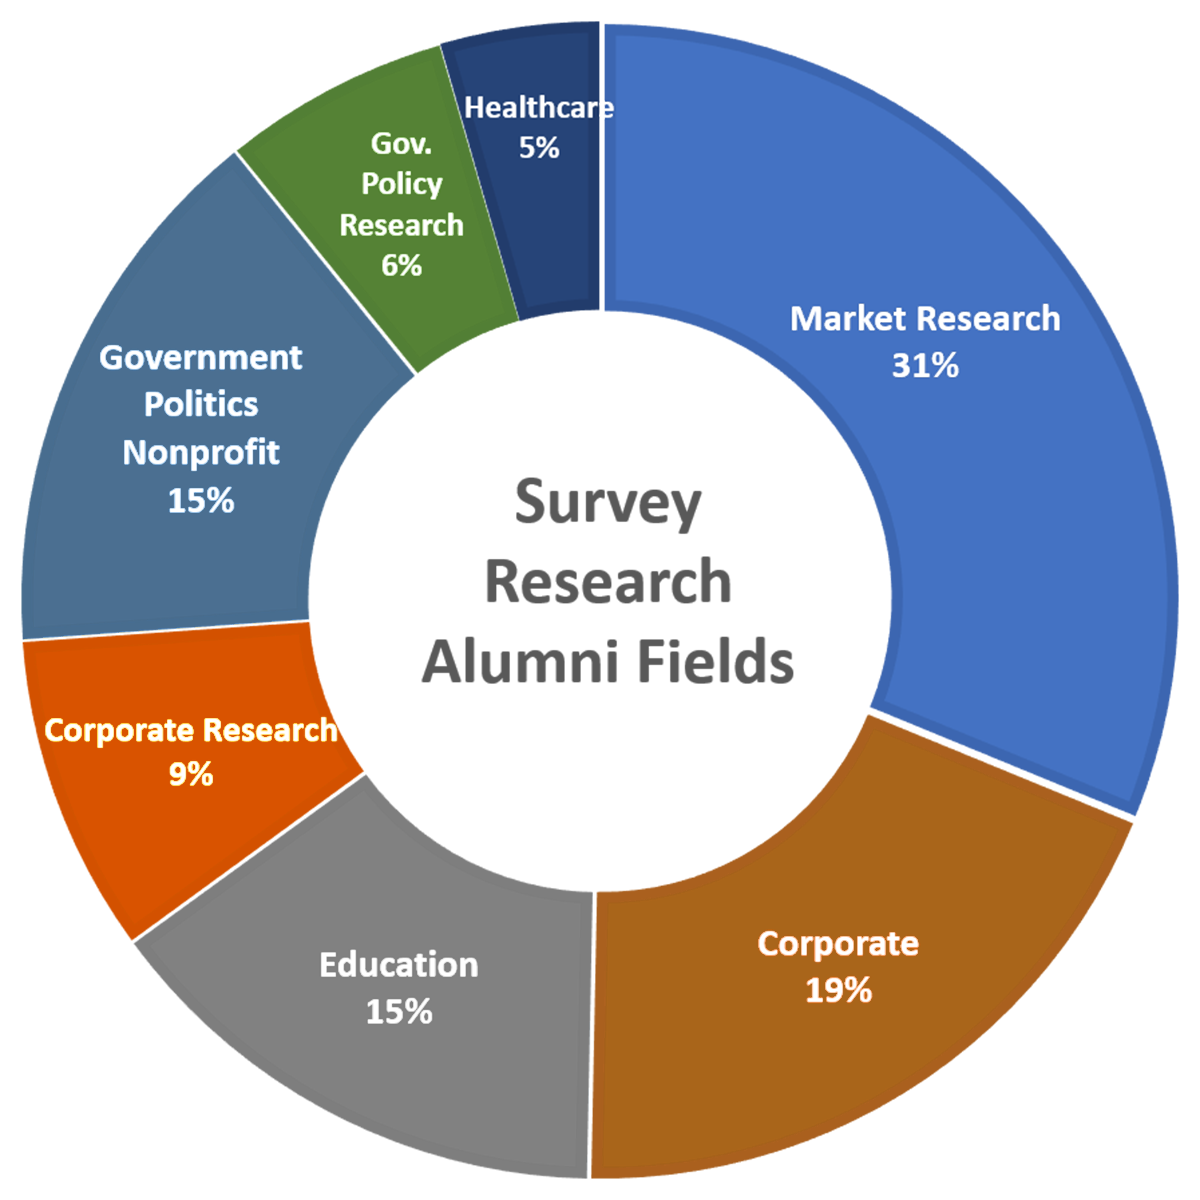 Pie chart outlining survey research alumni job fields: 31% market research, 19% corporate, 15%education; 9% corporate research, 15% government and nonprofit, 6% government policy research, and 5% healthcare.